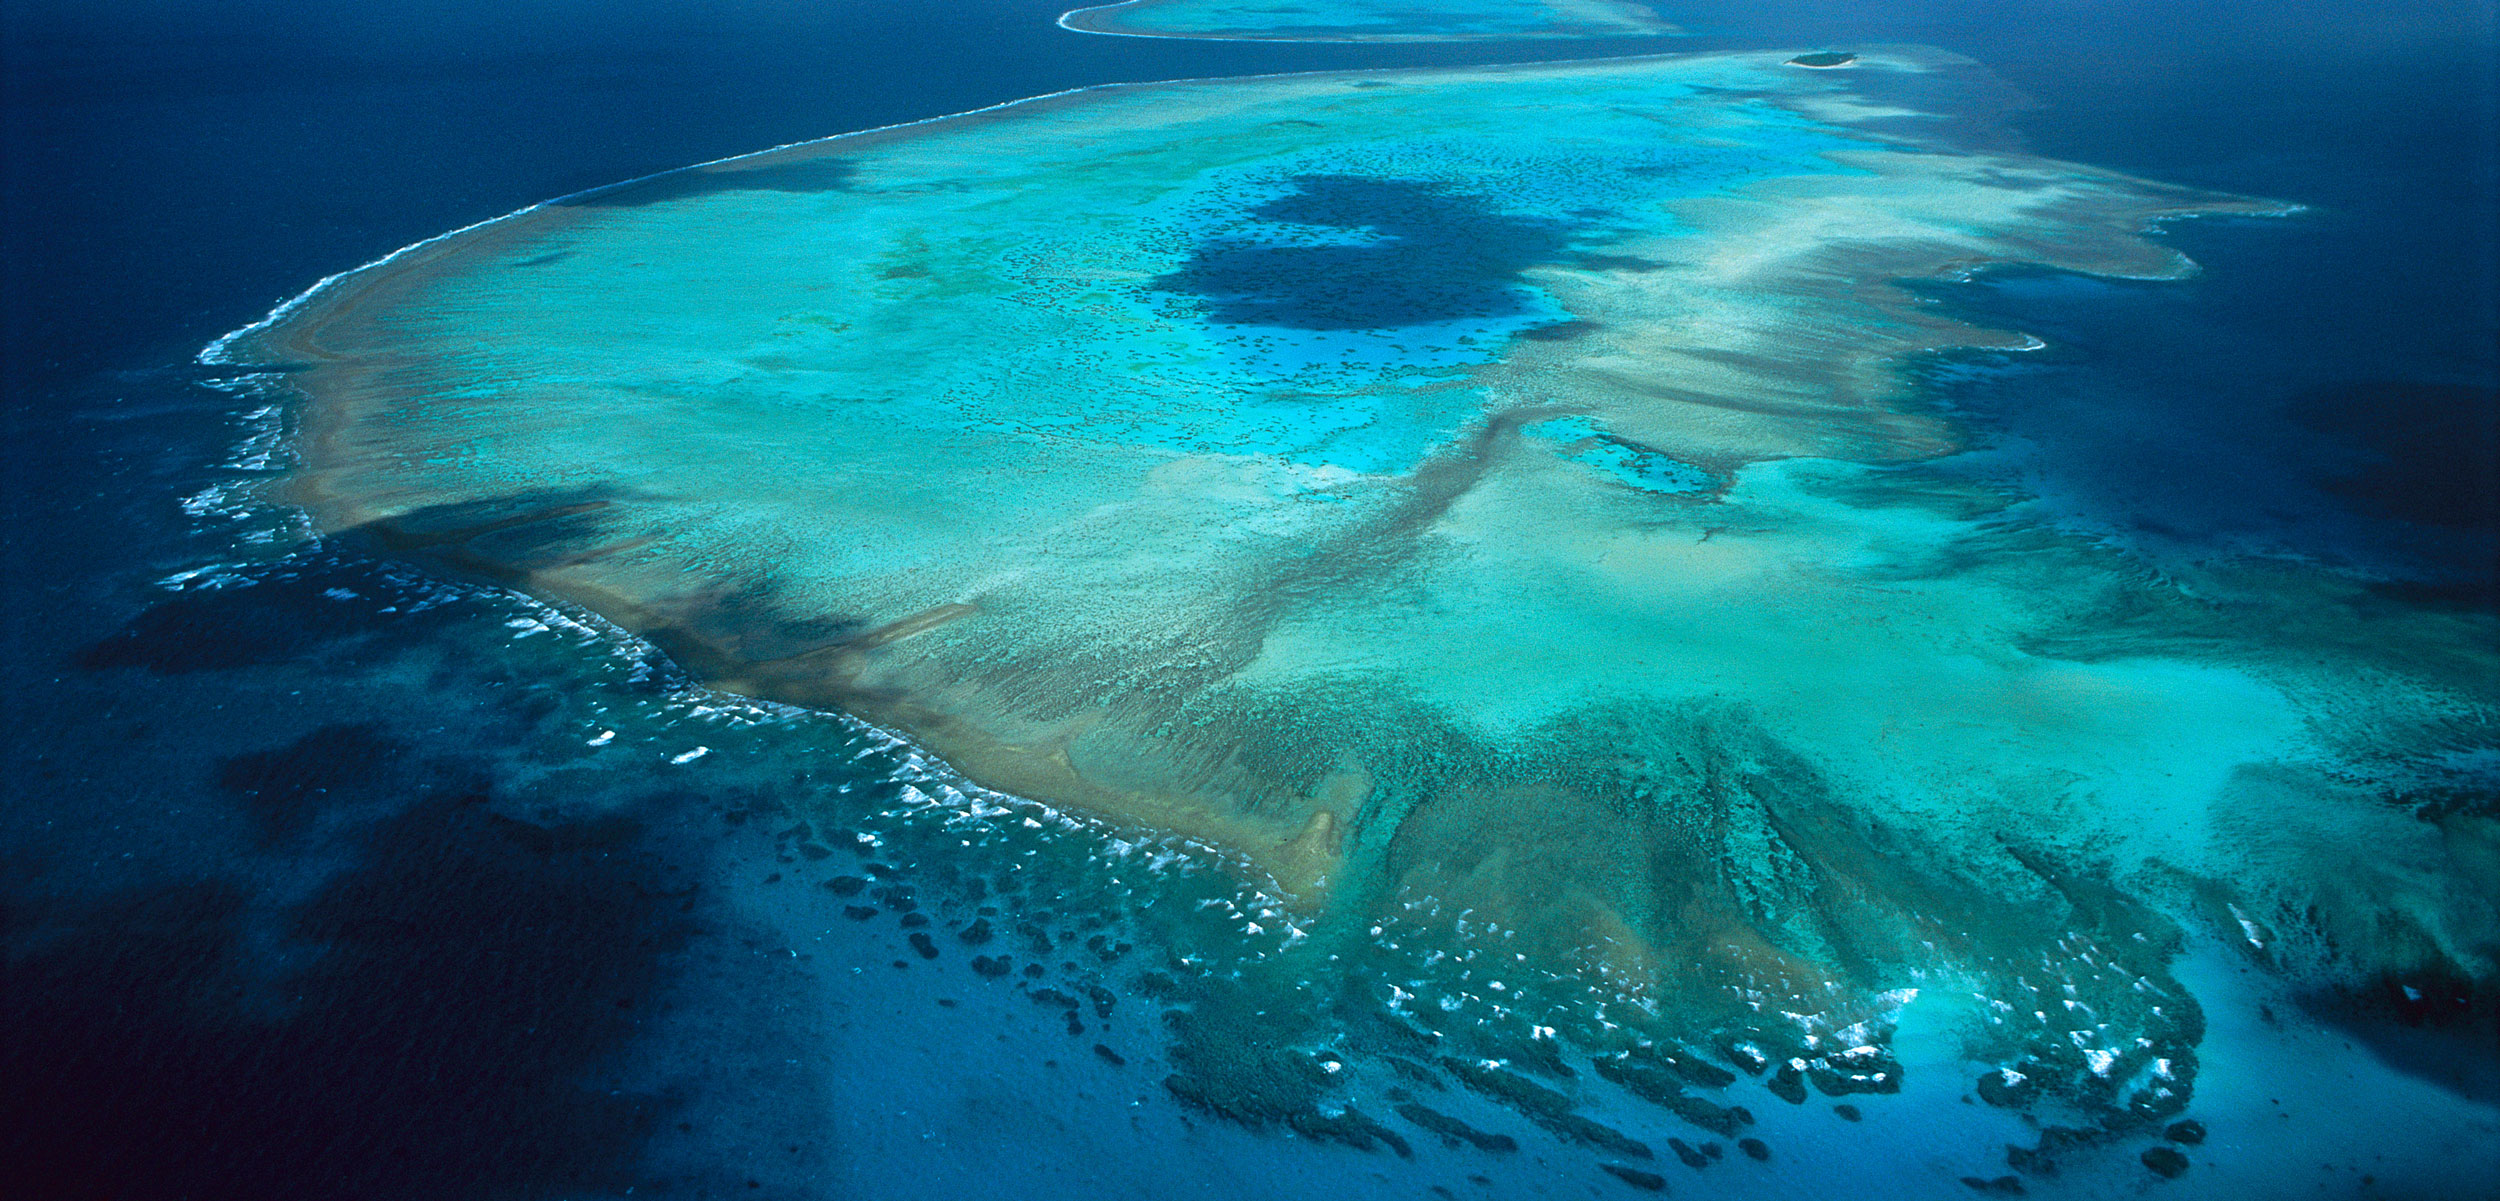 aerial photo of the Great Barrier Reef